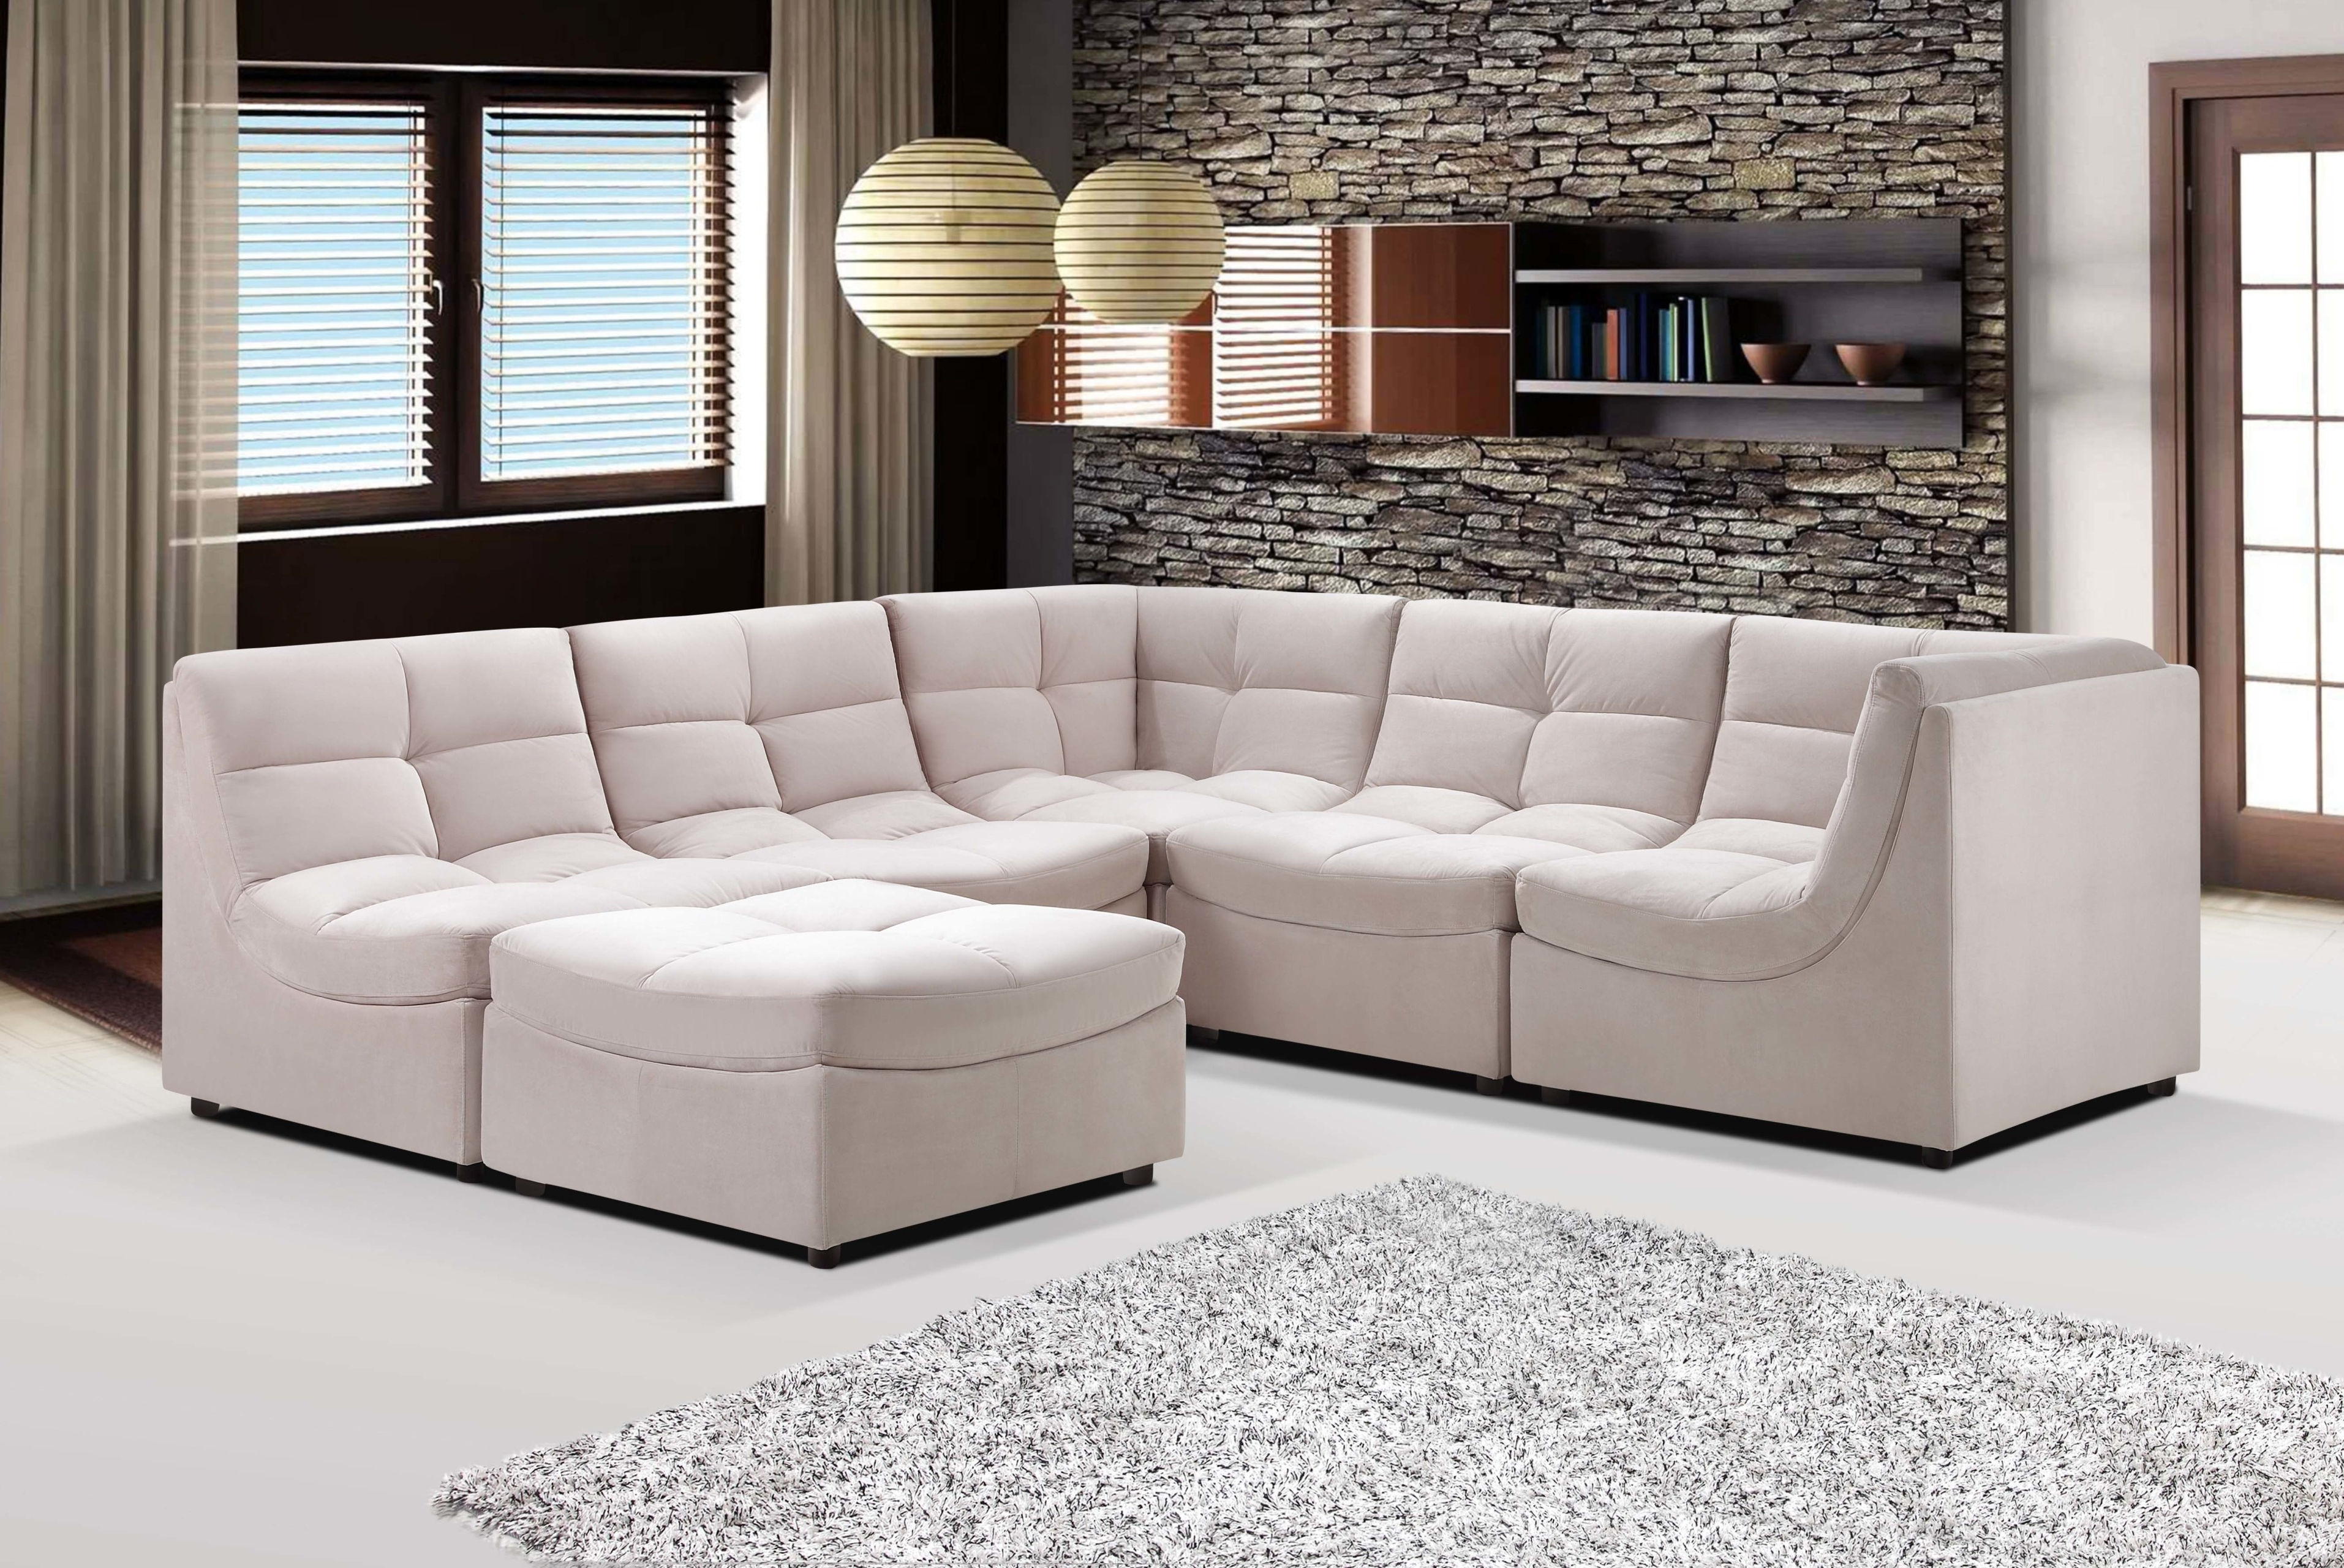 Well Known Small Modular Sofas Regarding Luxury Small Modular Sectional Sofa 21 For Your Sofa Sectionals (View 13 of 15)